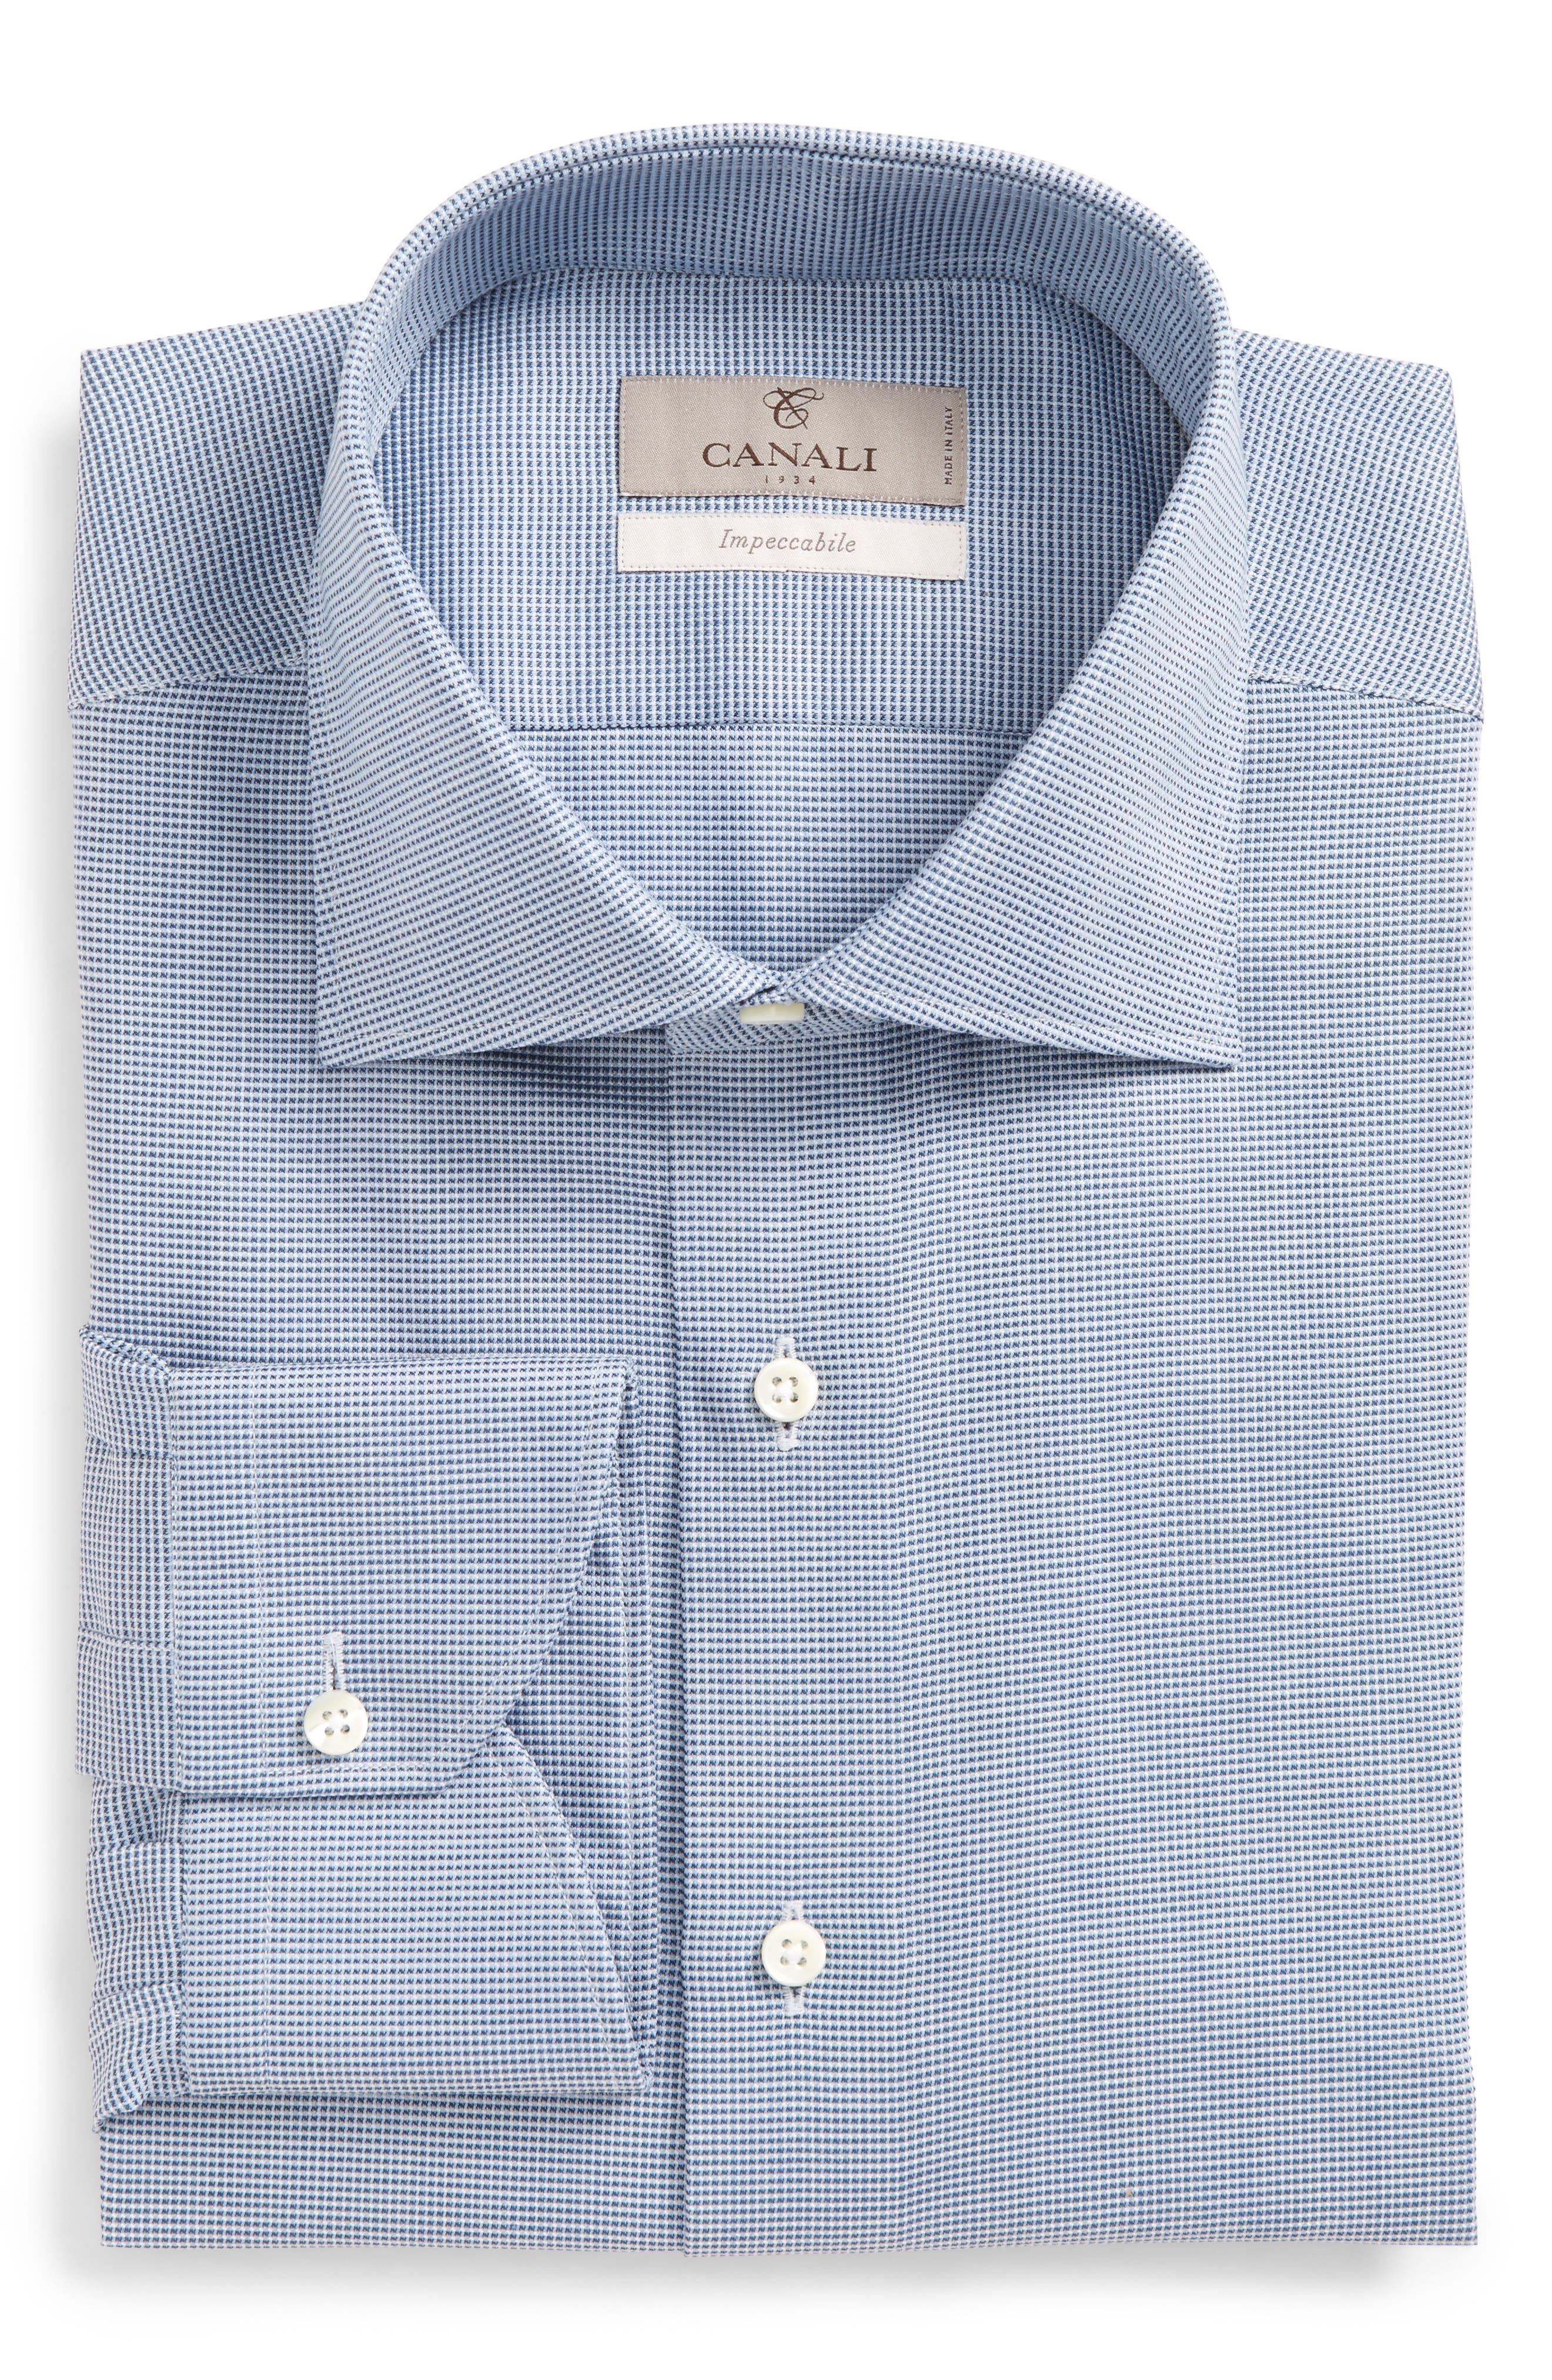 Regular Fit Solid Dress Shirt,                             Main thumbnail 1, color,                             Blue